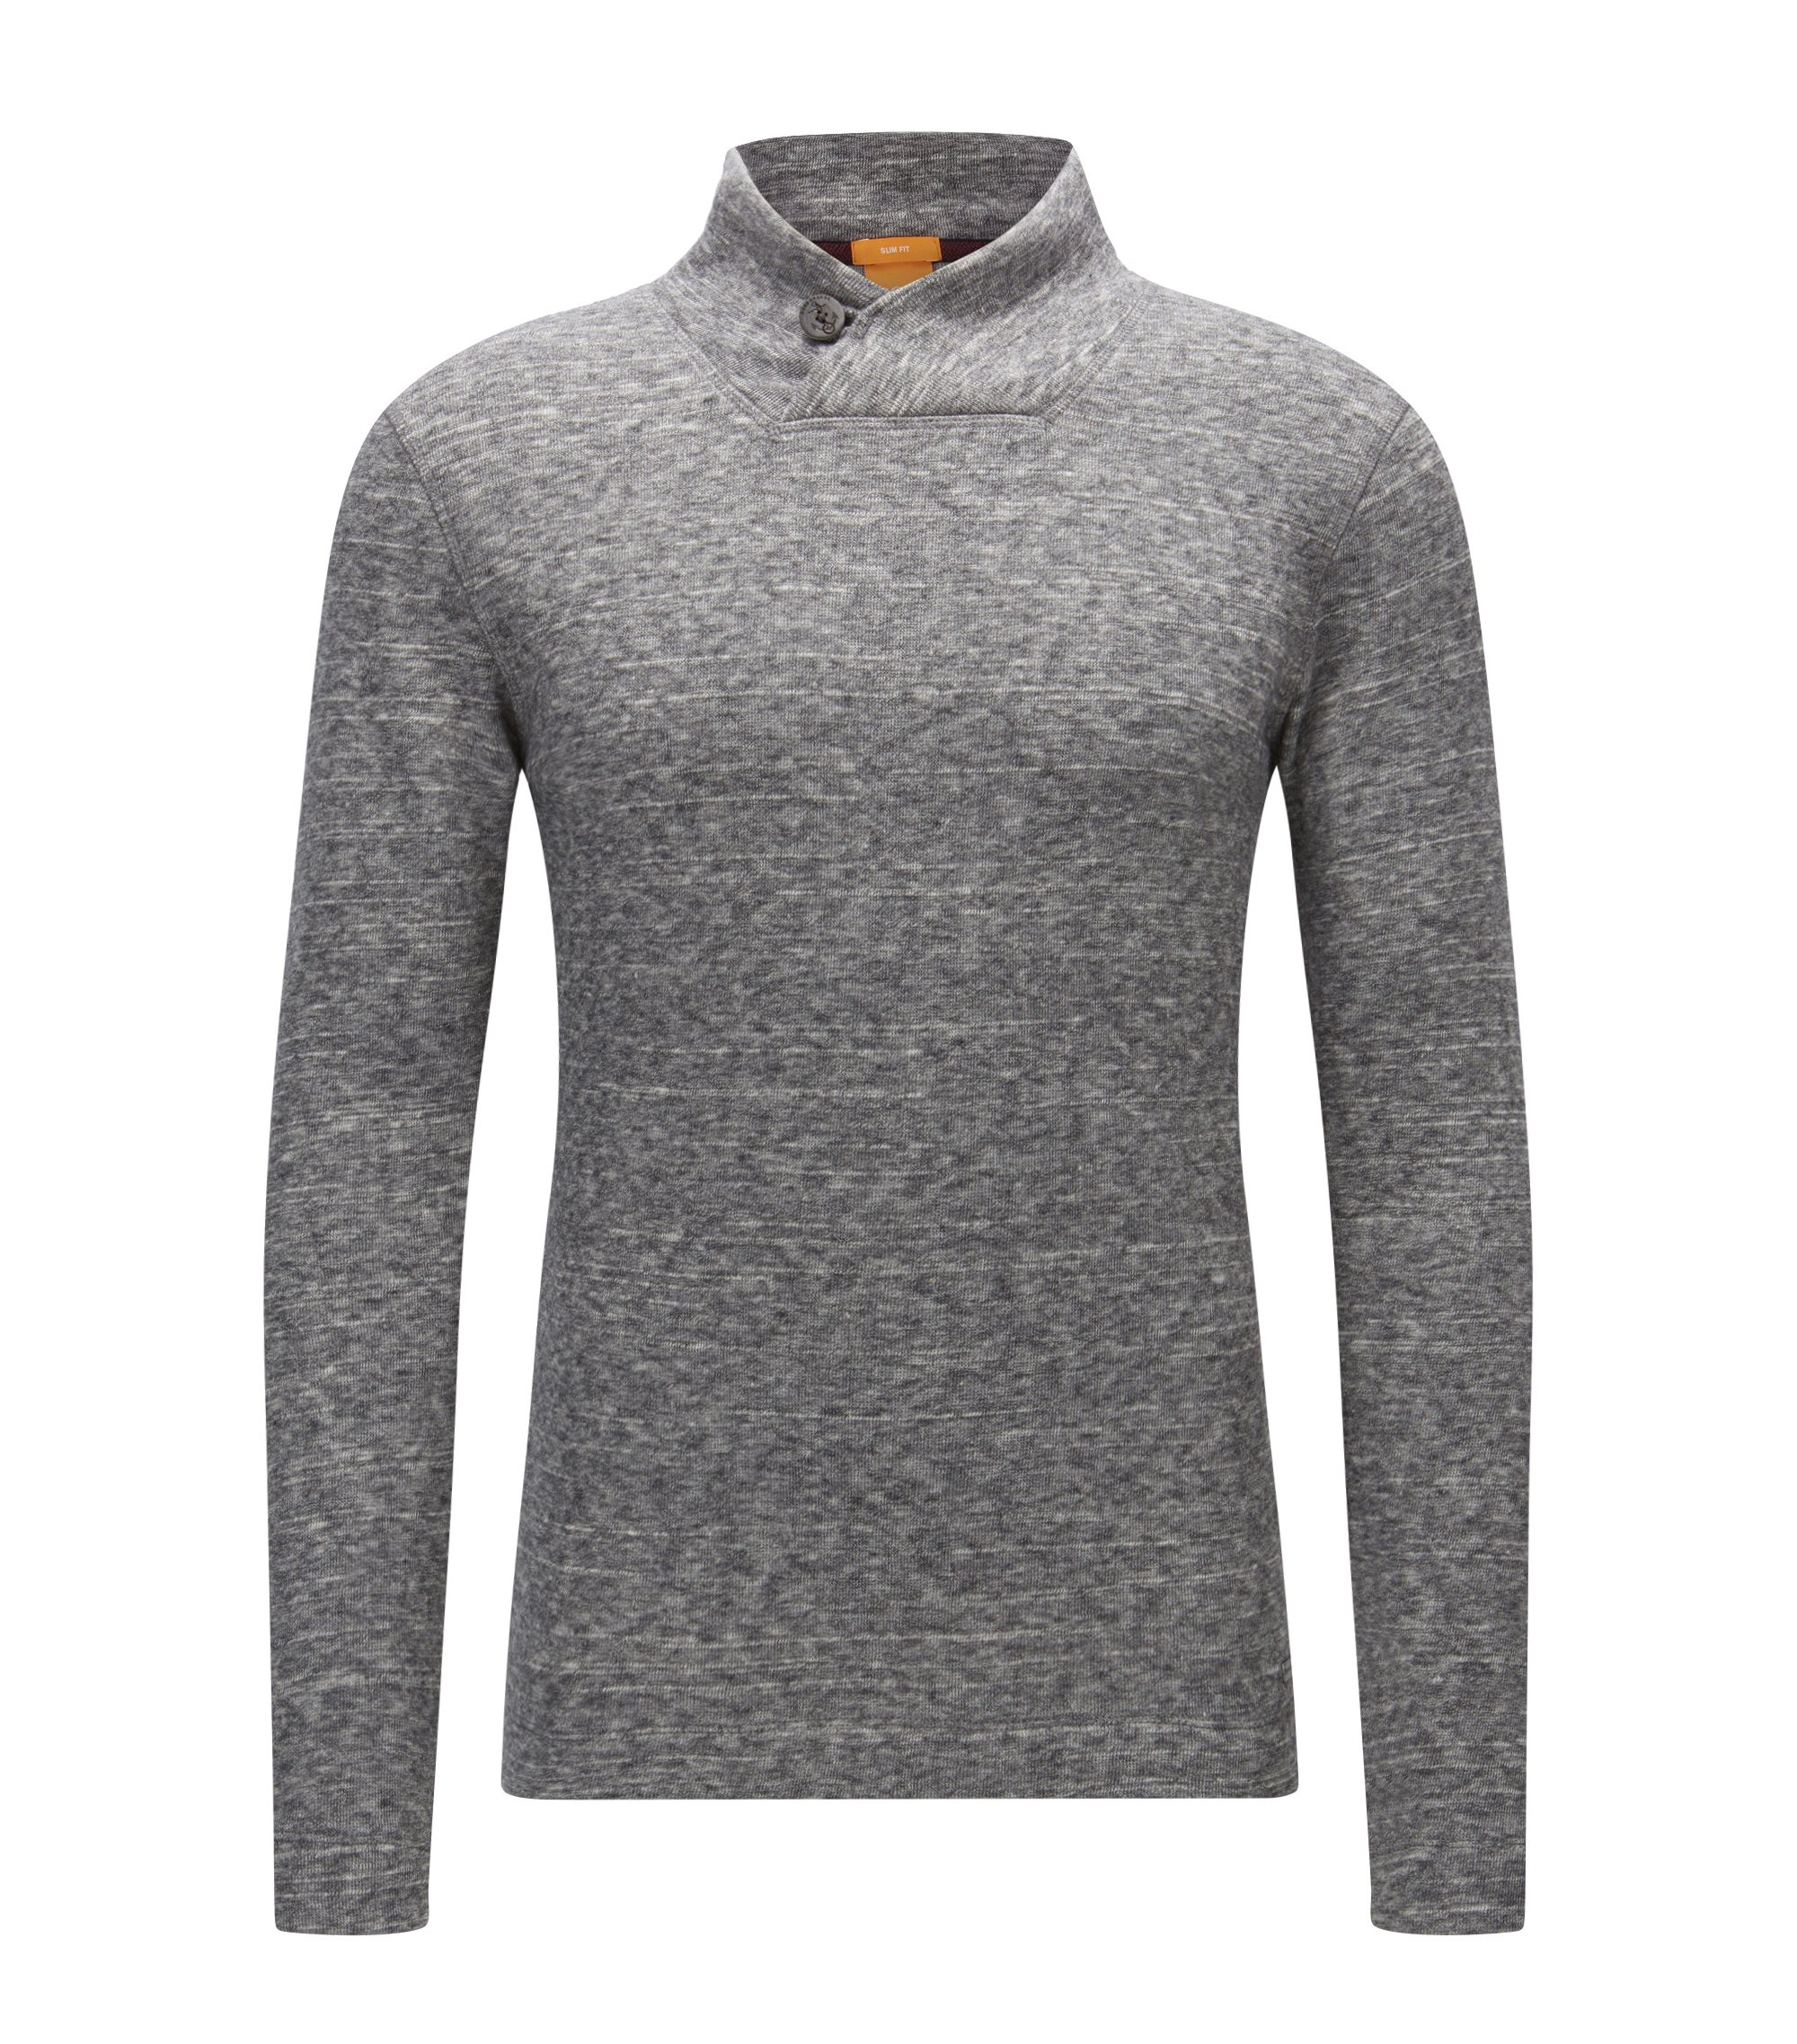 'Woolish' | Heathered Cotton Wool Jersey Sweater, Light Grey